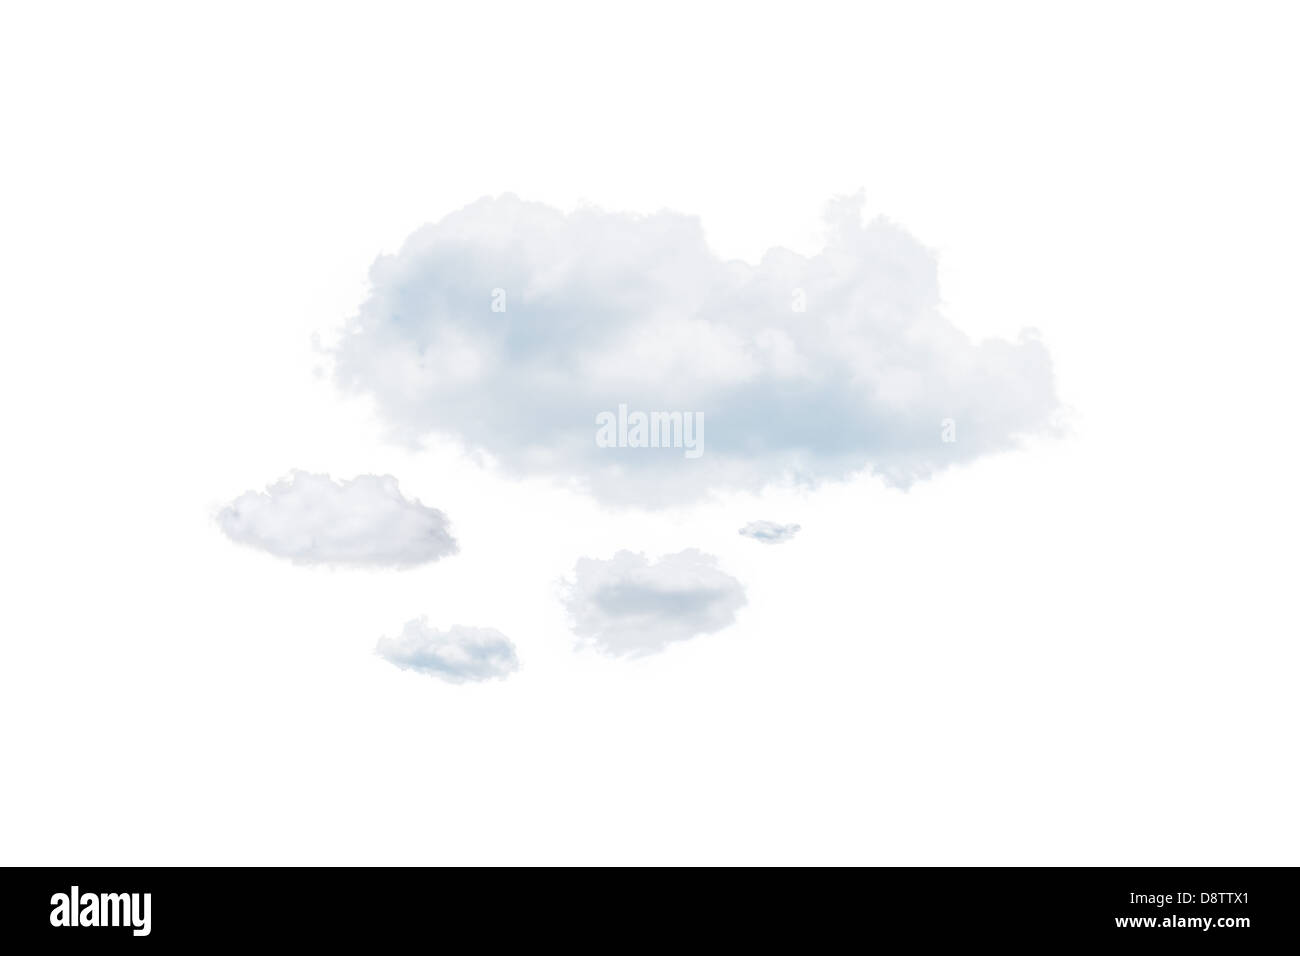 Shot of clouds, isolated on white background - Stock Image